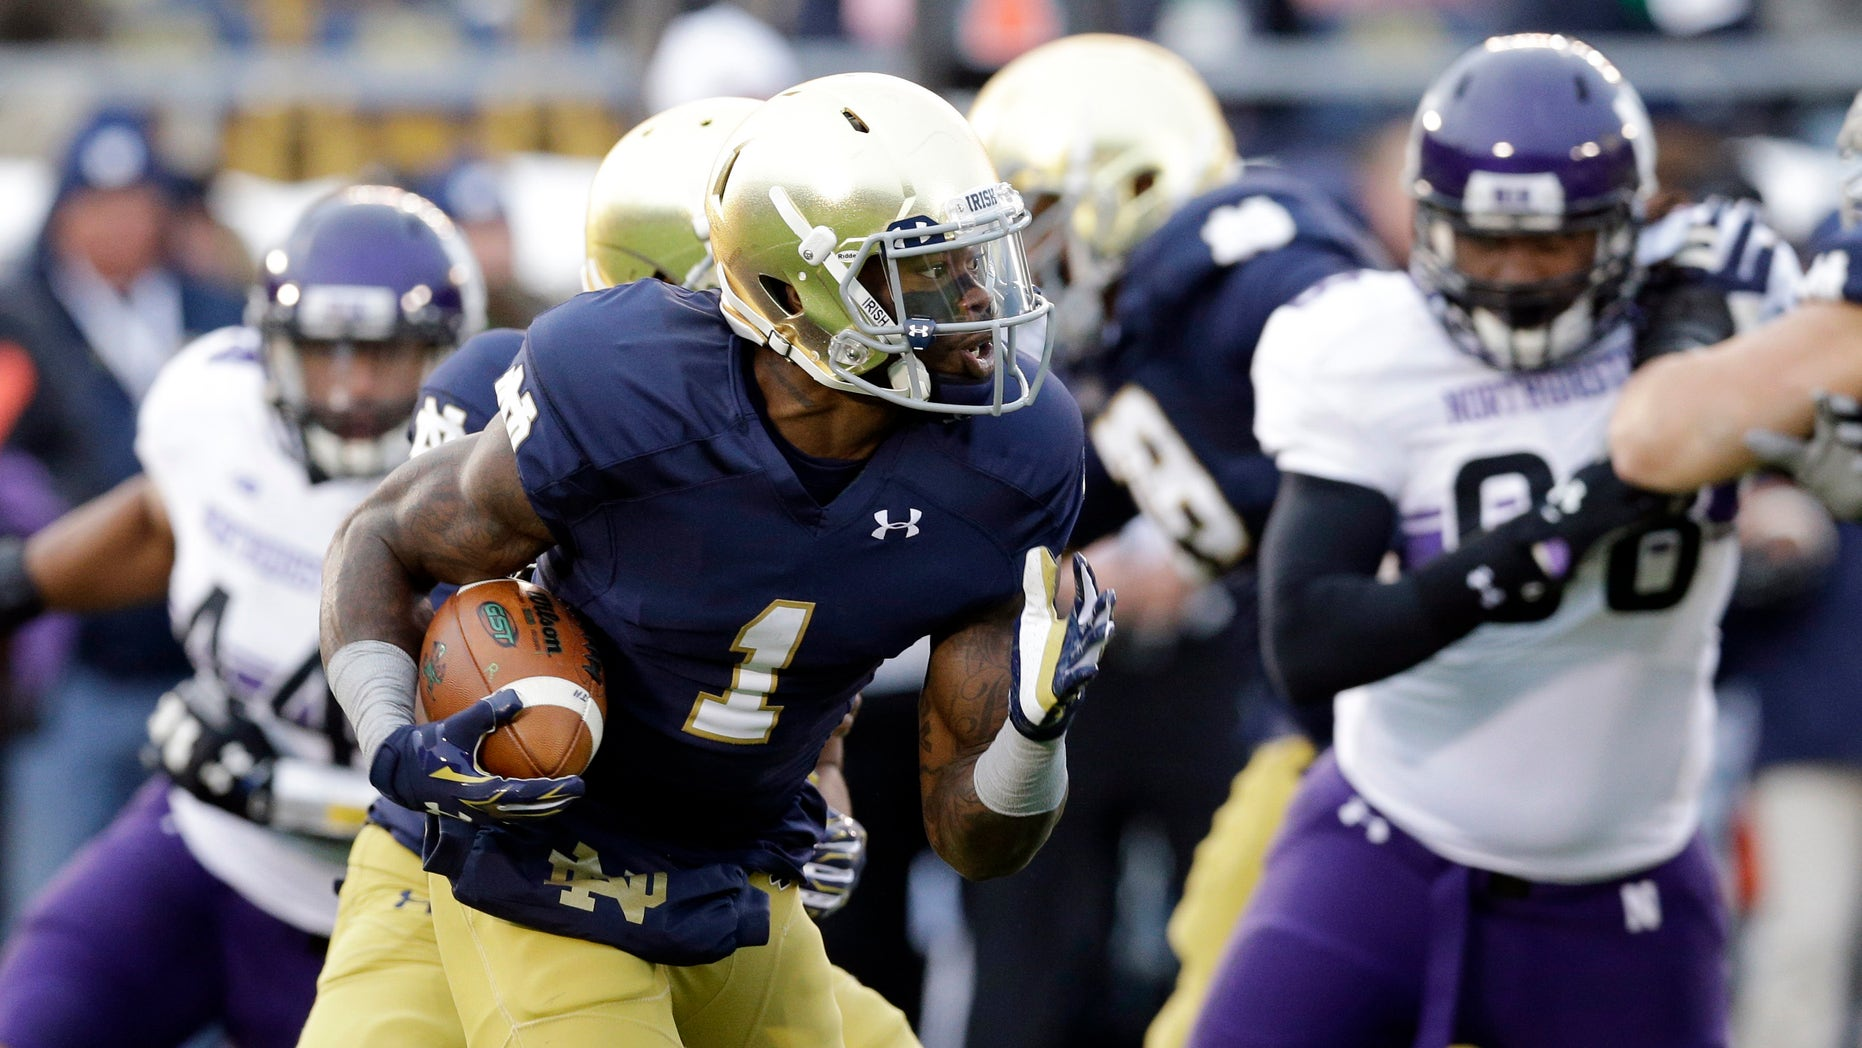 Running back Greg Bryant, pictured here with Notre Dame, was declared brain dead on Sunday.